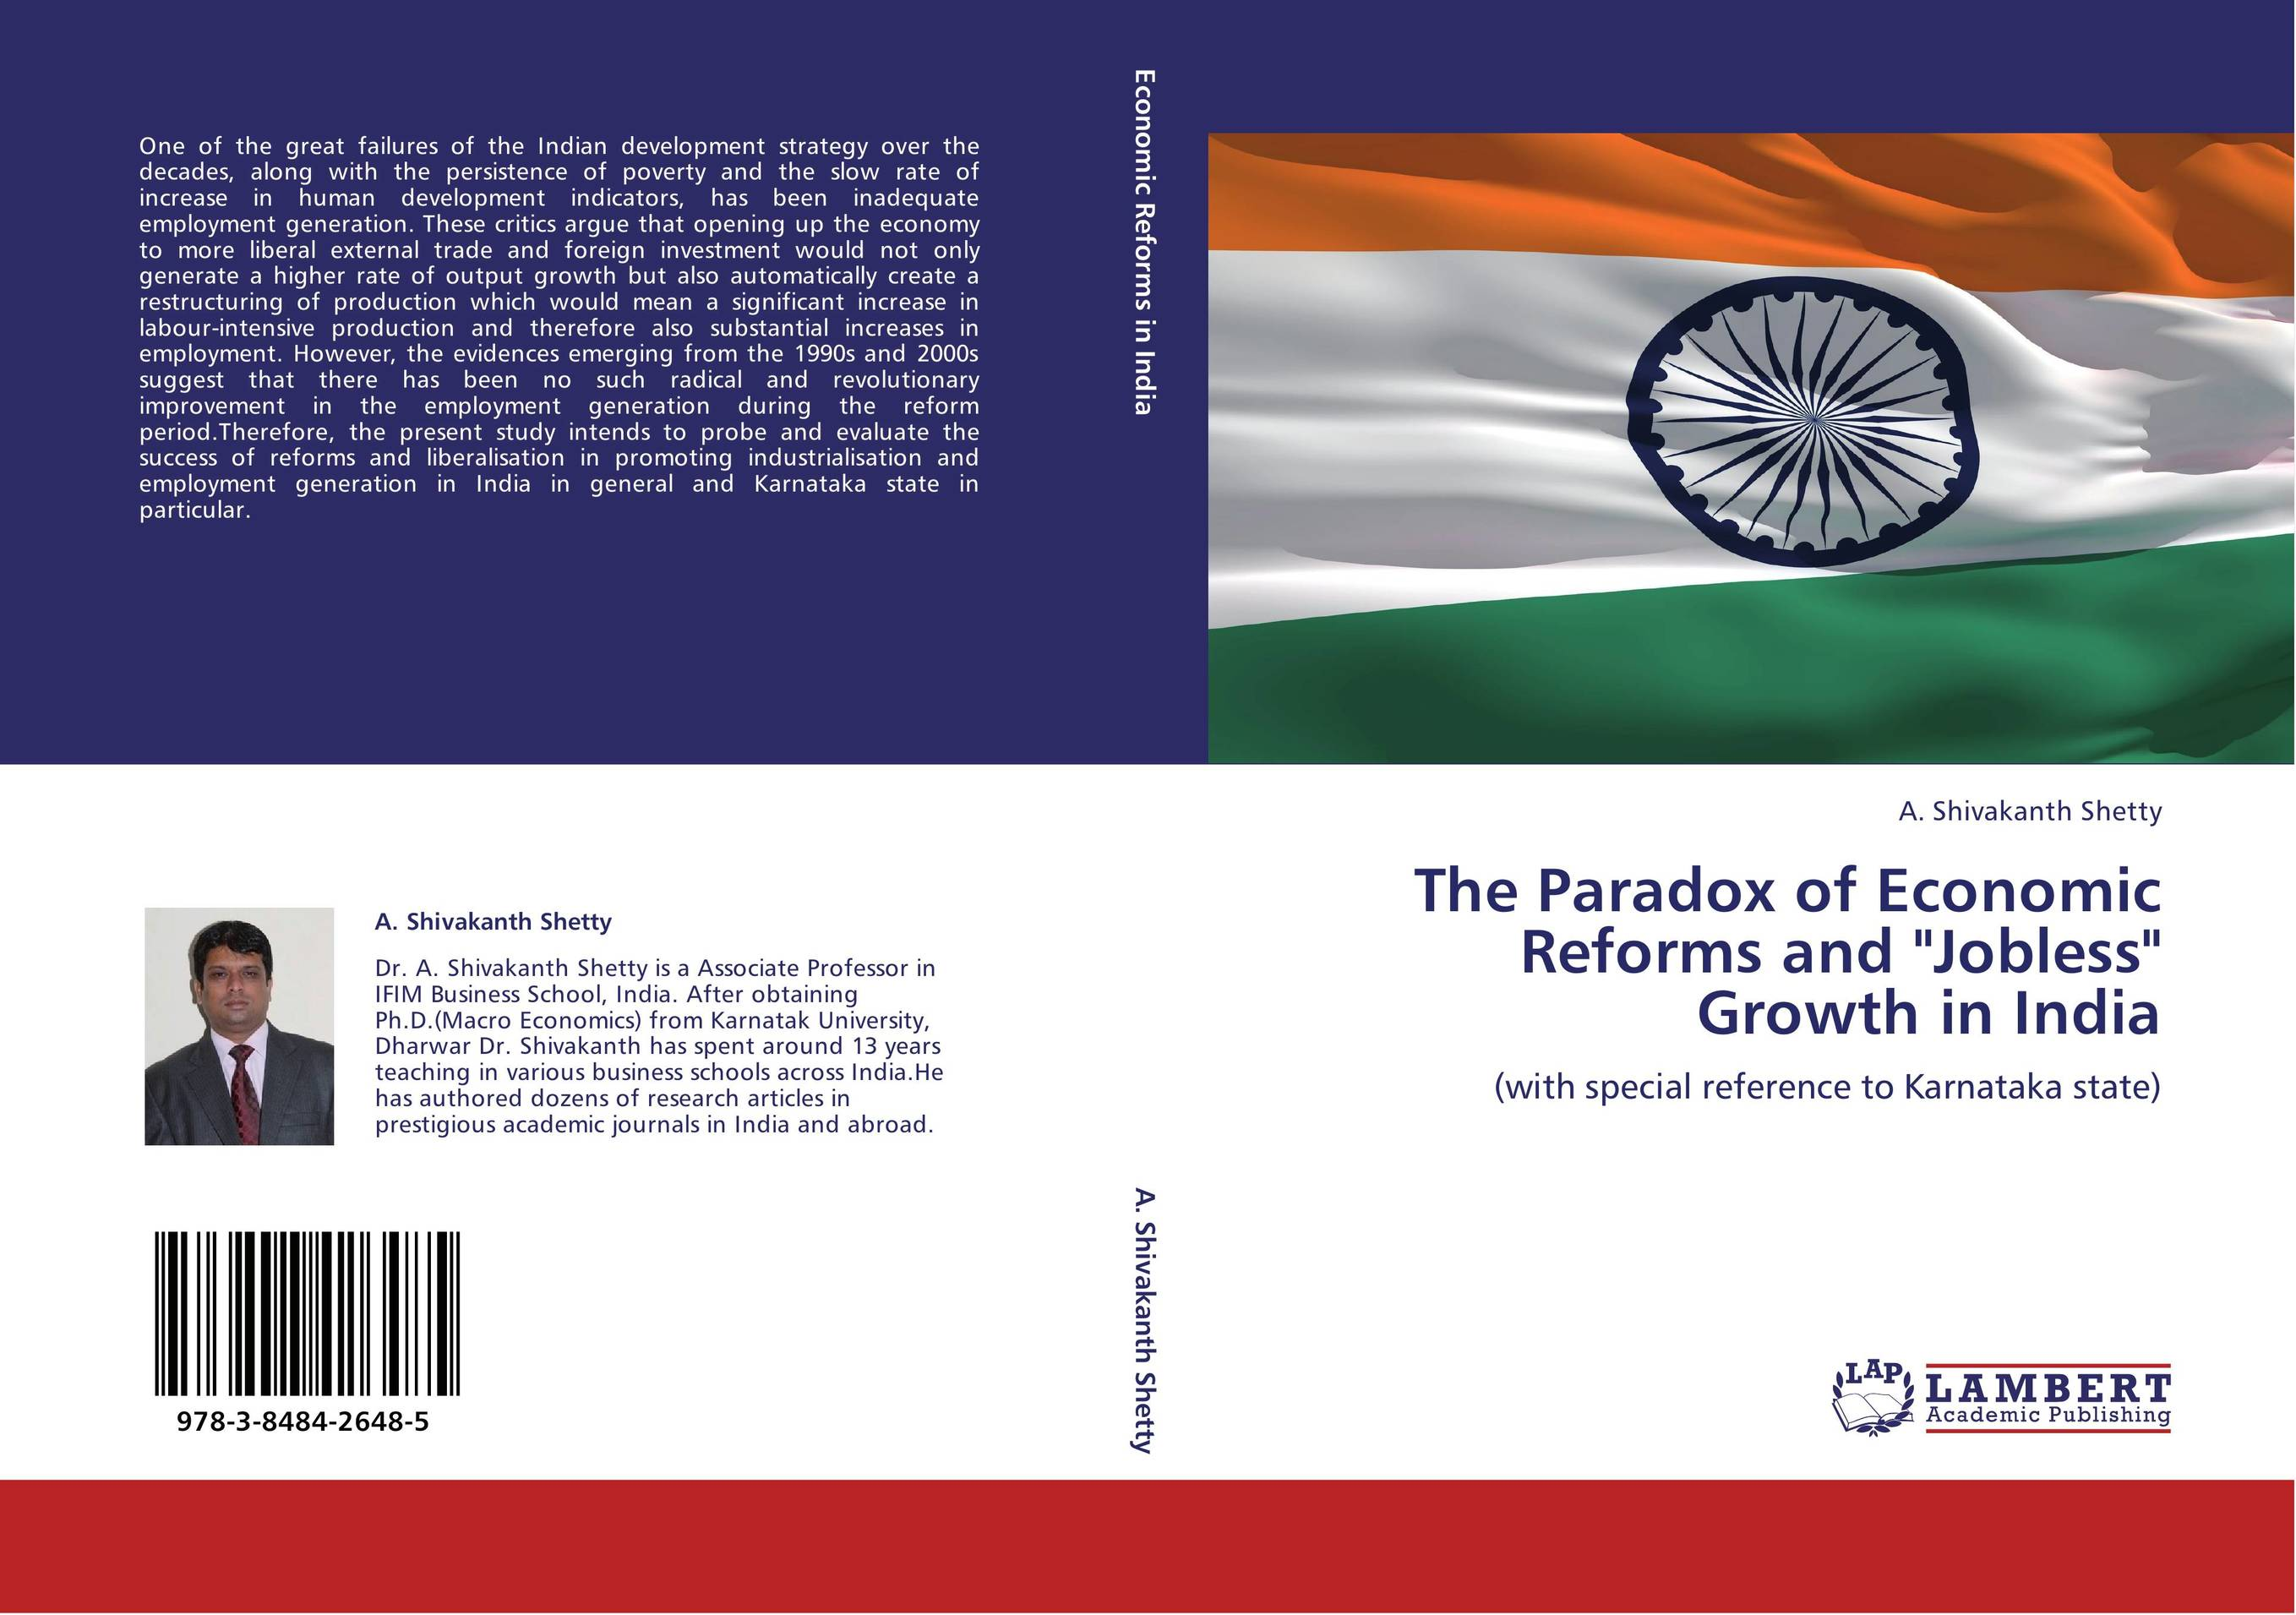 growth in communism in india history essay Post-communism and economic growth: an essay ignacy h chrzanowski professor of economics and management at the maritime academy of szczecin, poland and the szczecin school of.